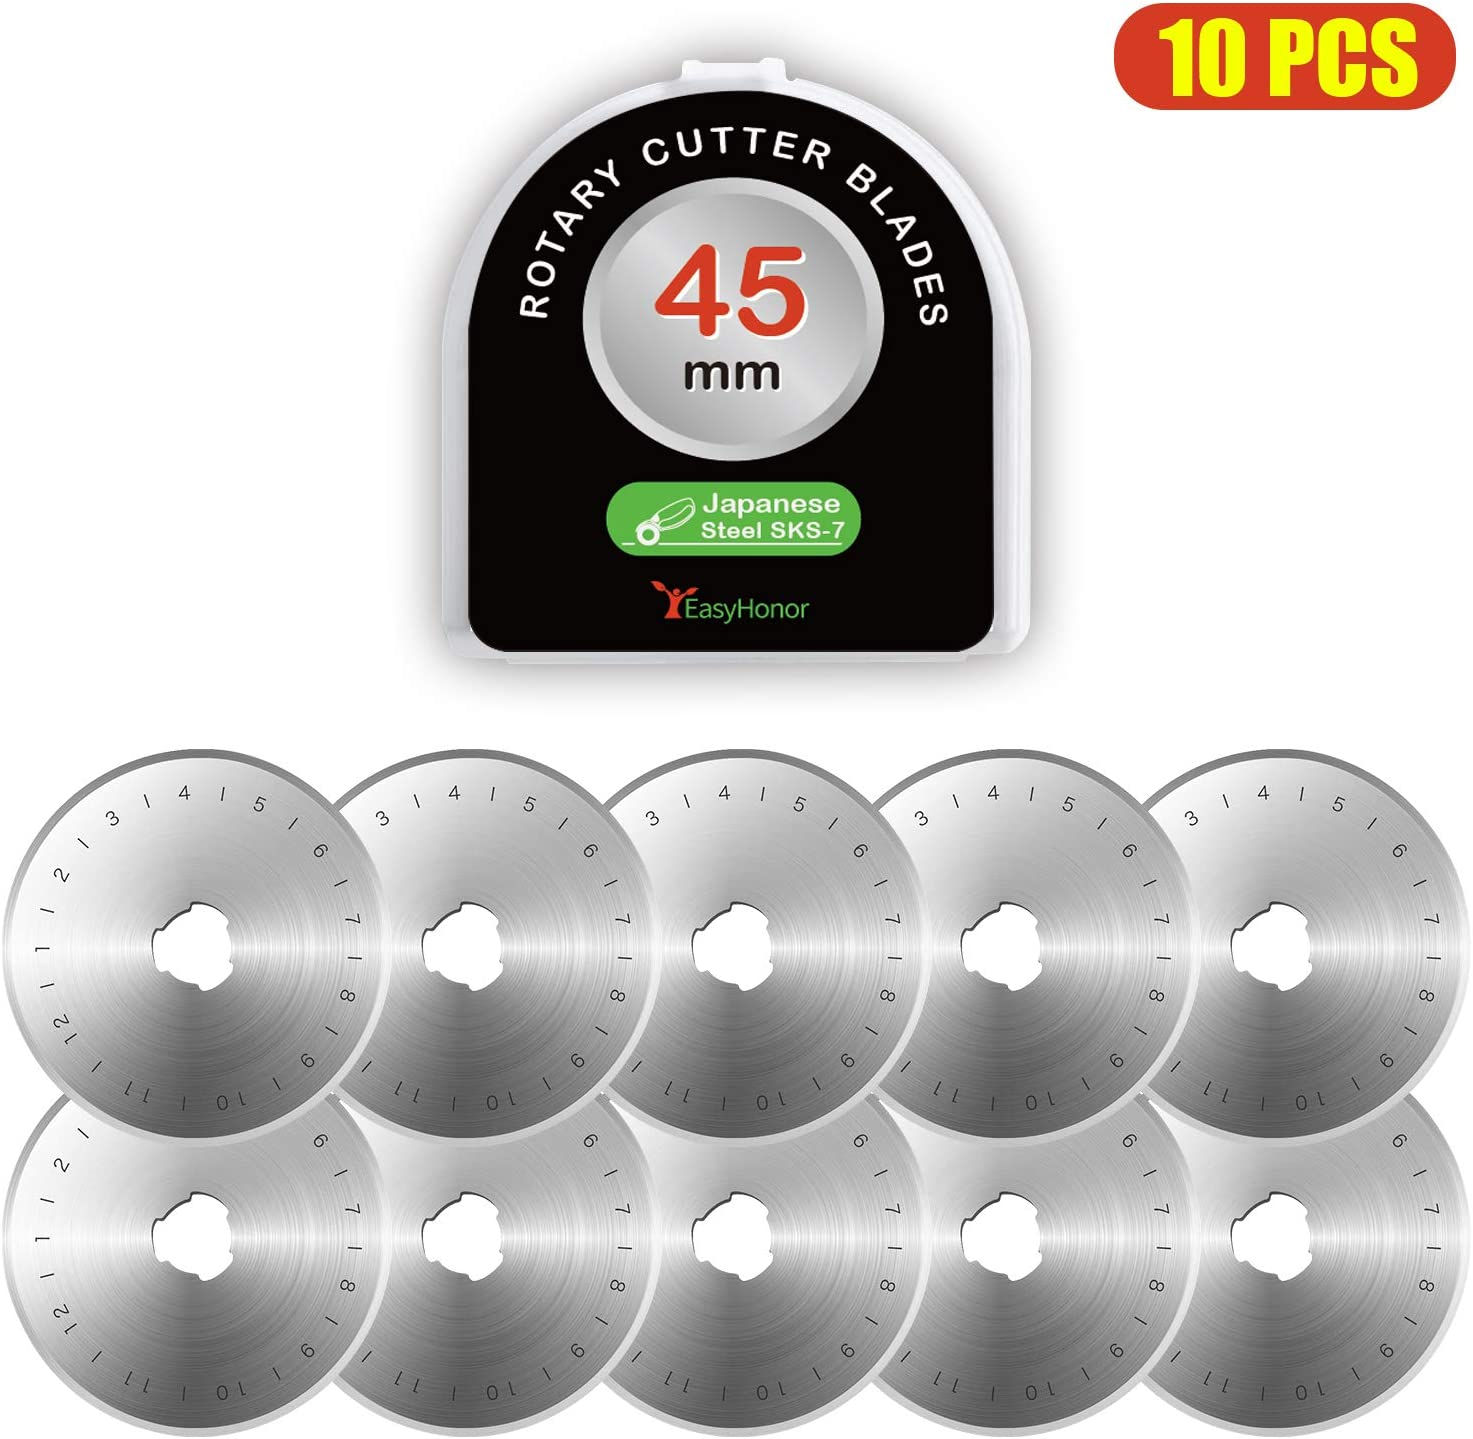 Rotary Cutter Blades 45mm by EasyHonor, Fits OLFA,DAFA,Fiskars,Truecut Replacement, Quilting Scrapbooking Sewing Arts Crafts,Great for Heavy Duty Use, Quilting, Patchwork, Crafts and Sewing. (10 Pcs)